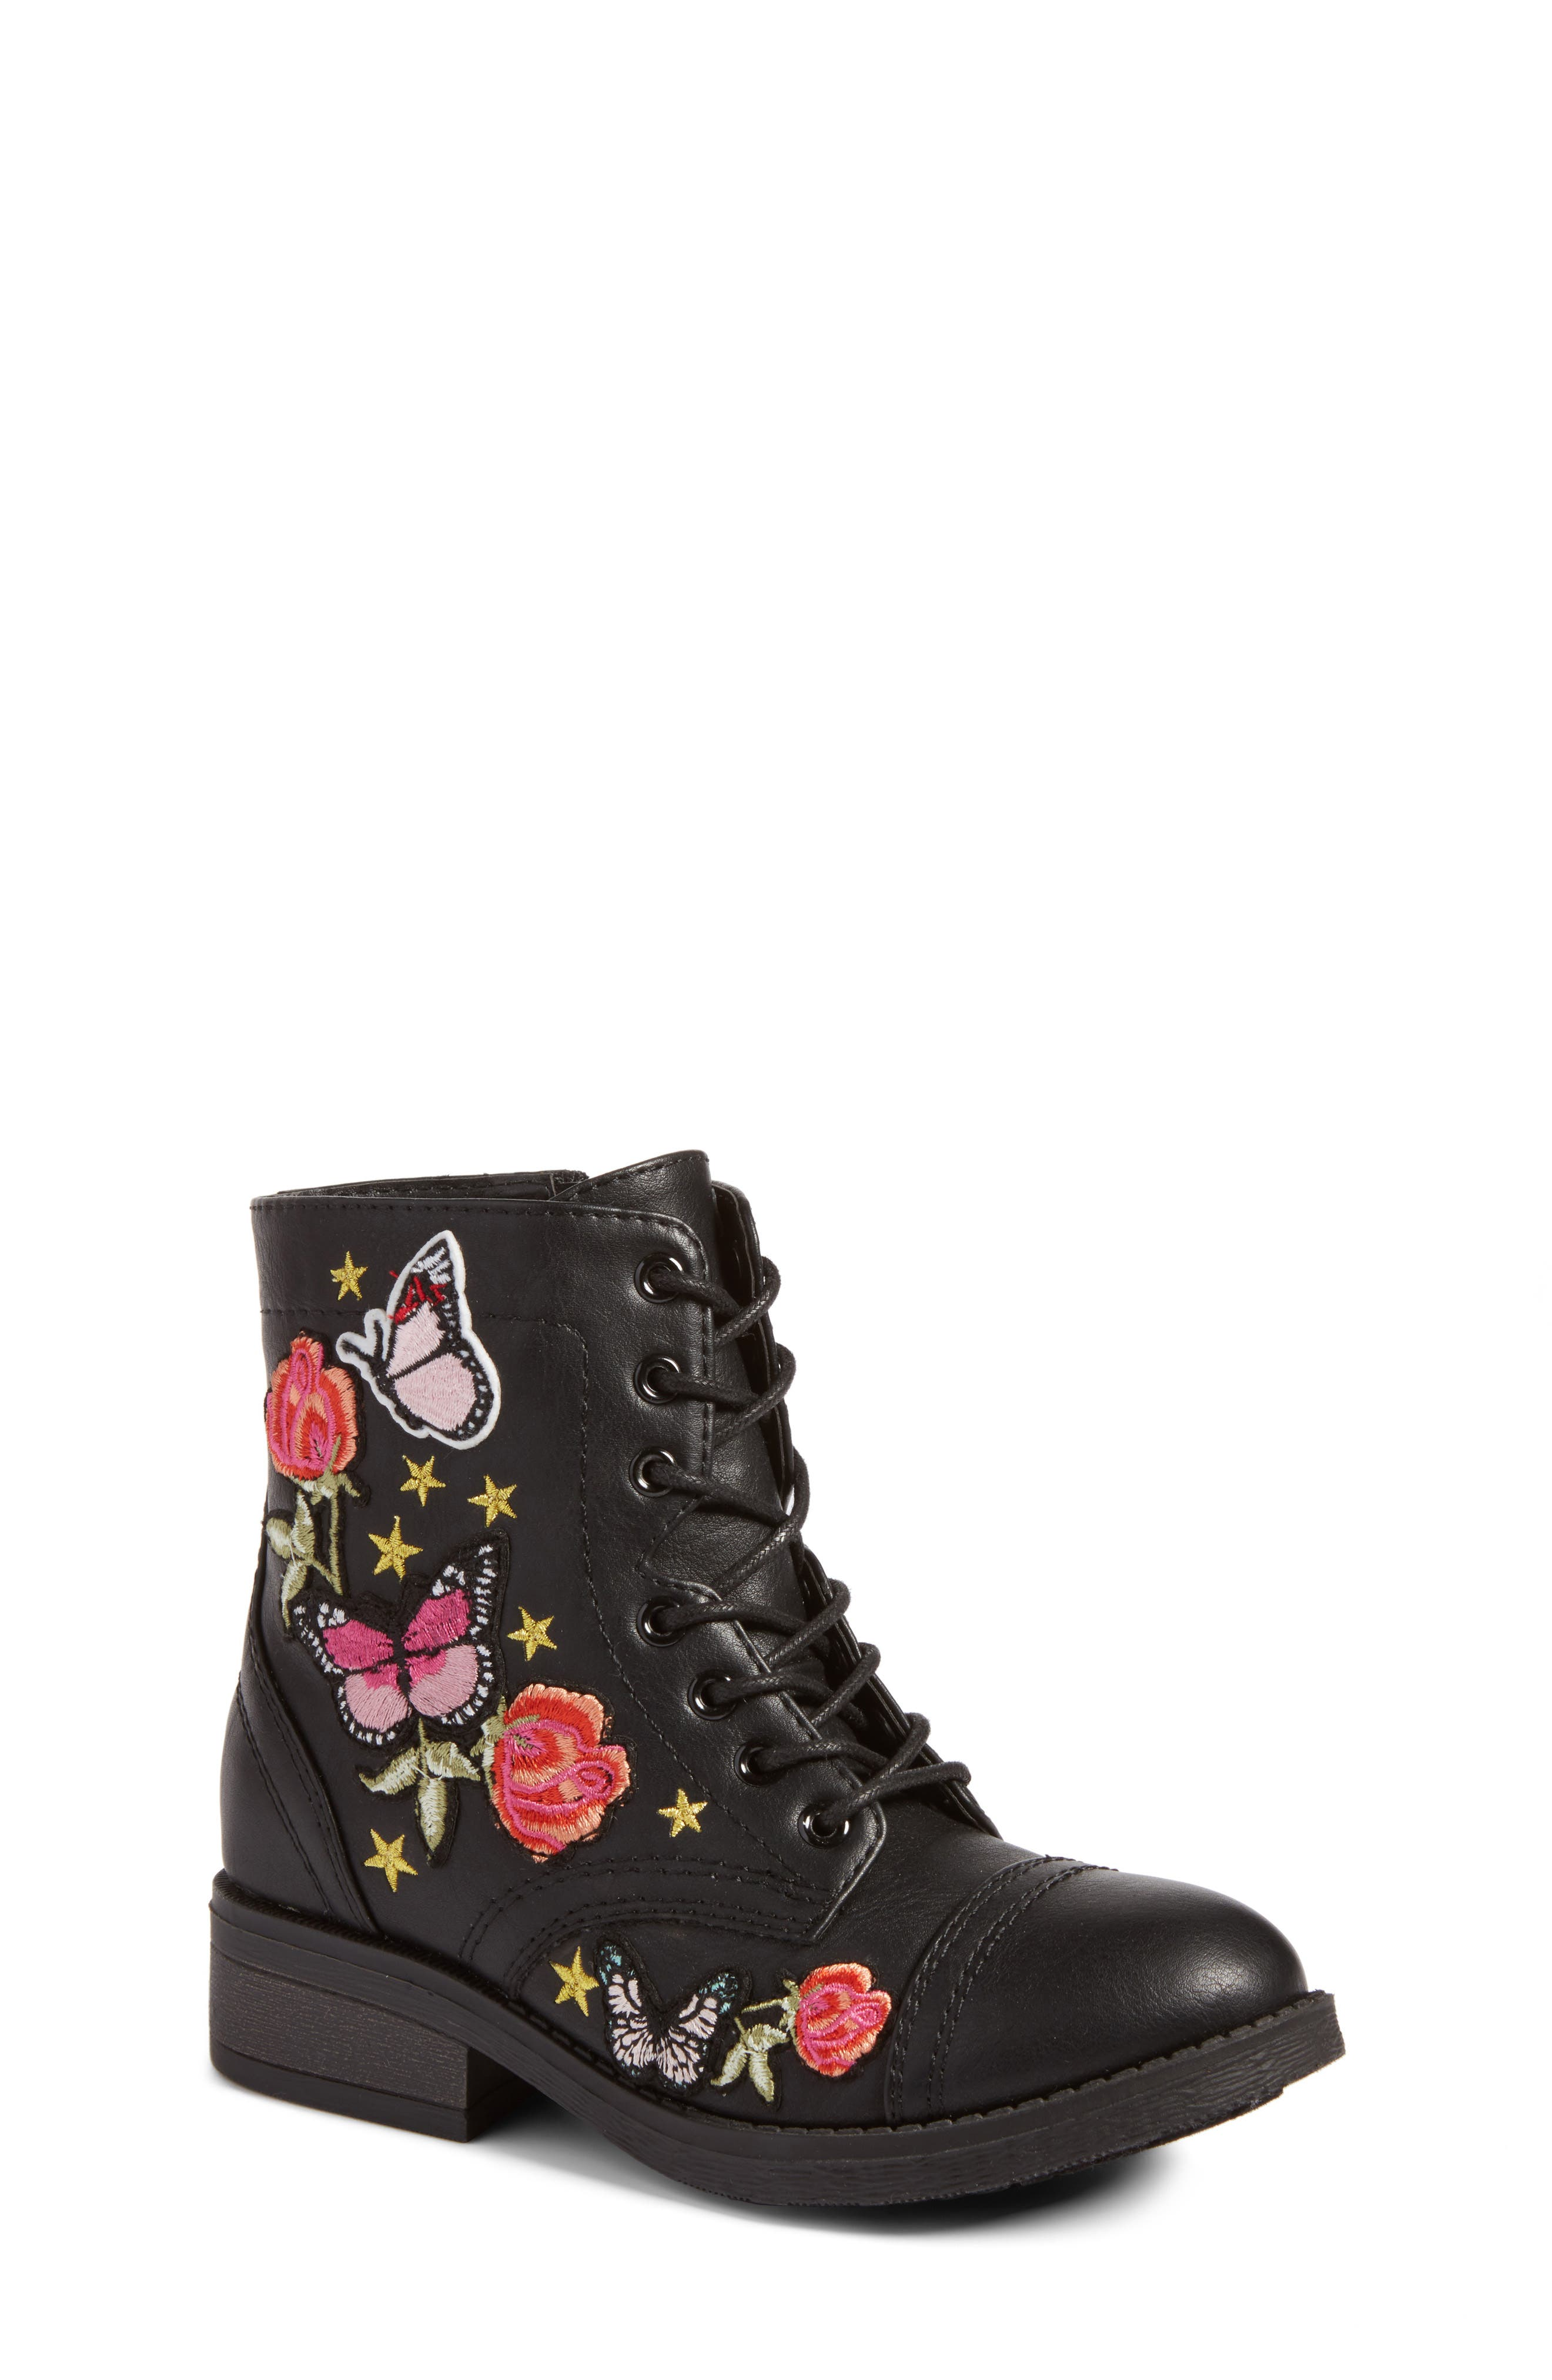 Roaring Embroidered Combat Boot,                         Main,                         color, Black Faux Leather